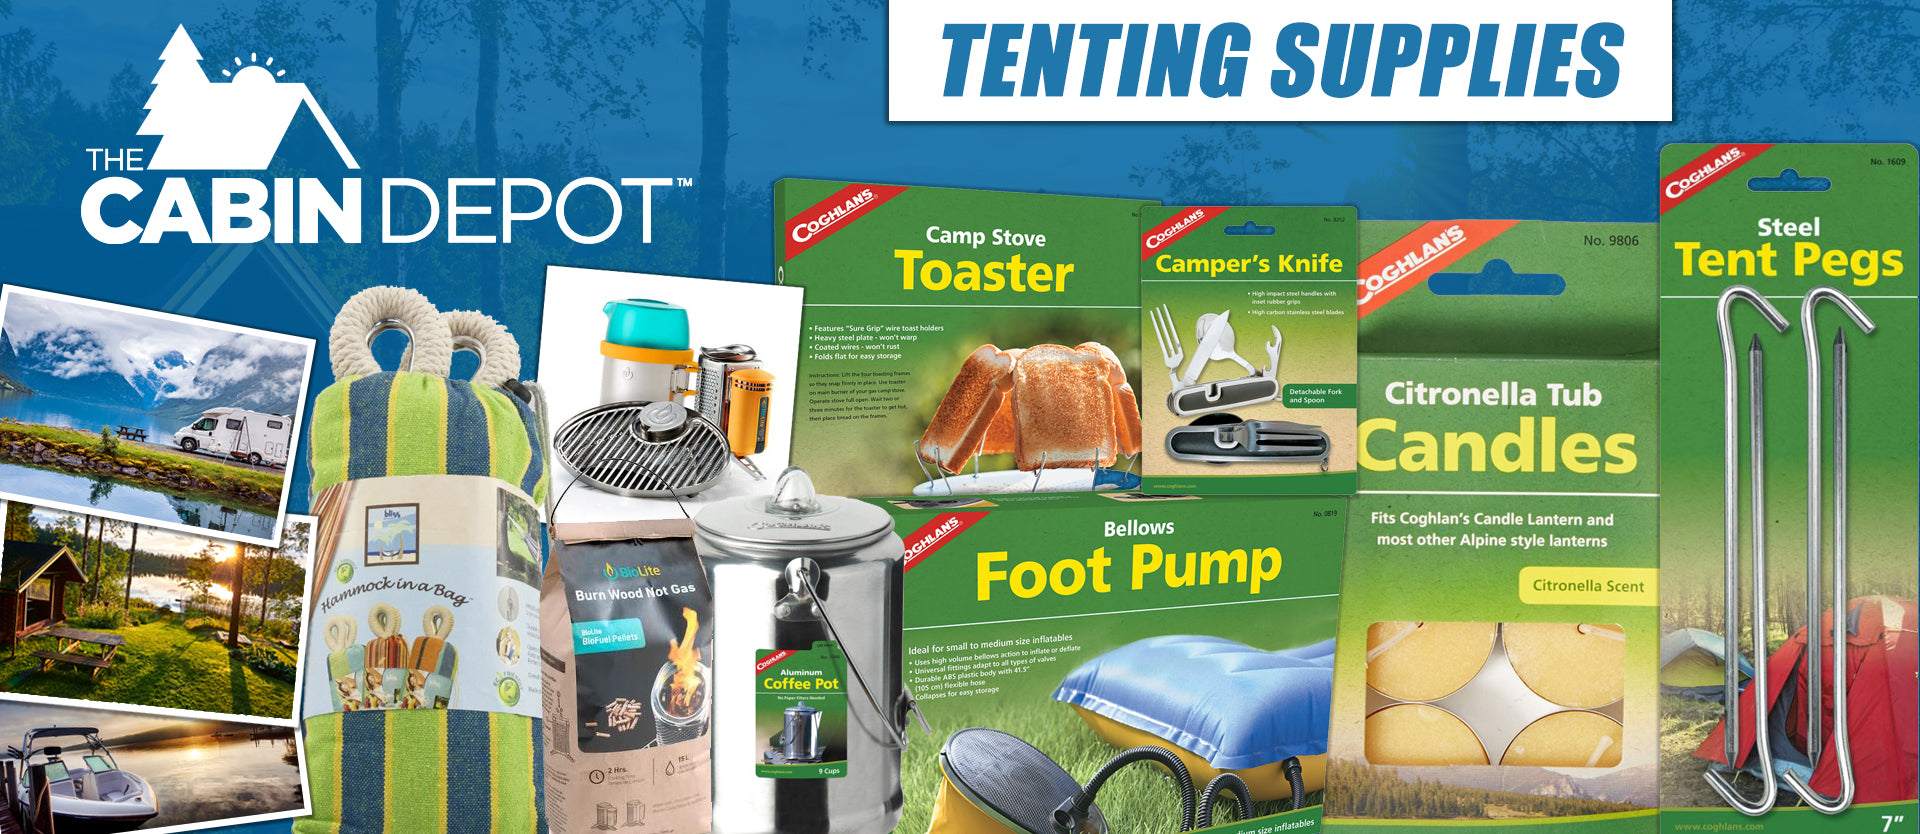 Tenting Supplies Camping The Cabin Depot ™ Canada